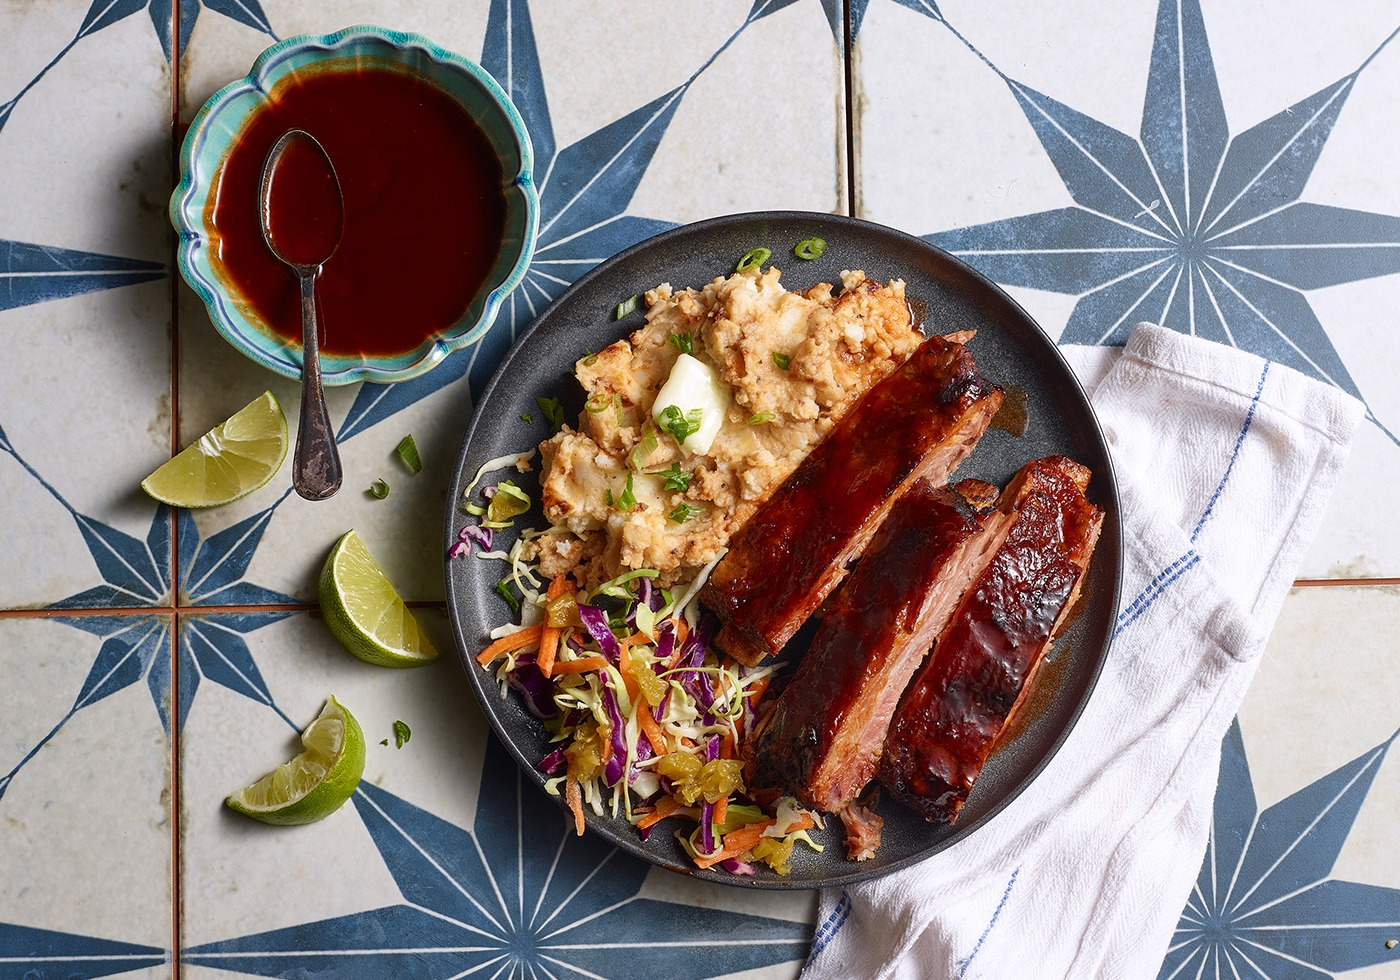 Honey Guajillo Glazed Pork Ribs with mashed potatoes on plate overhead